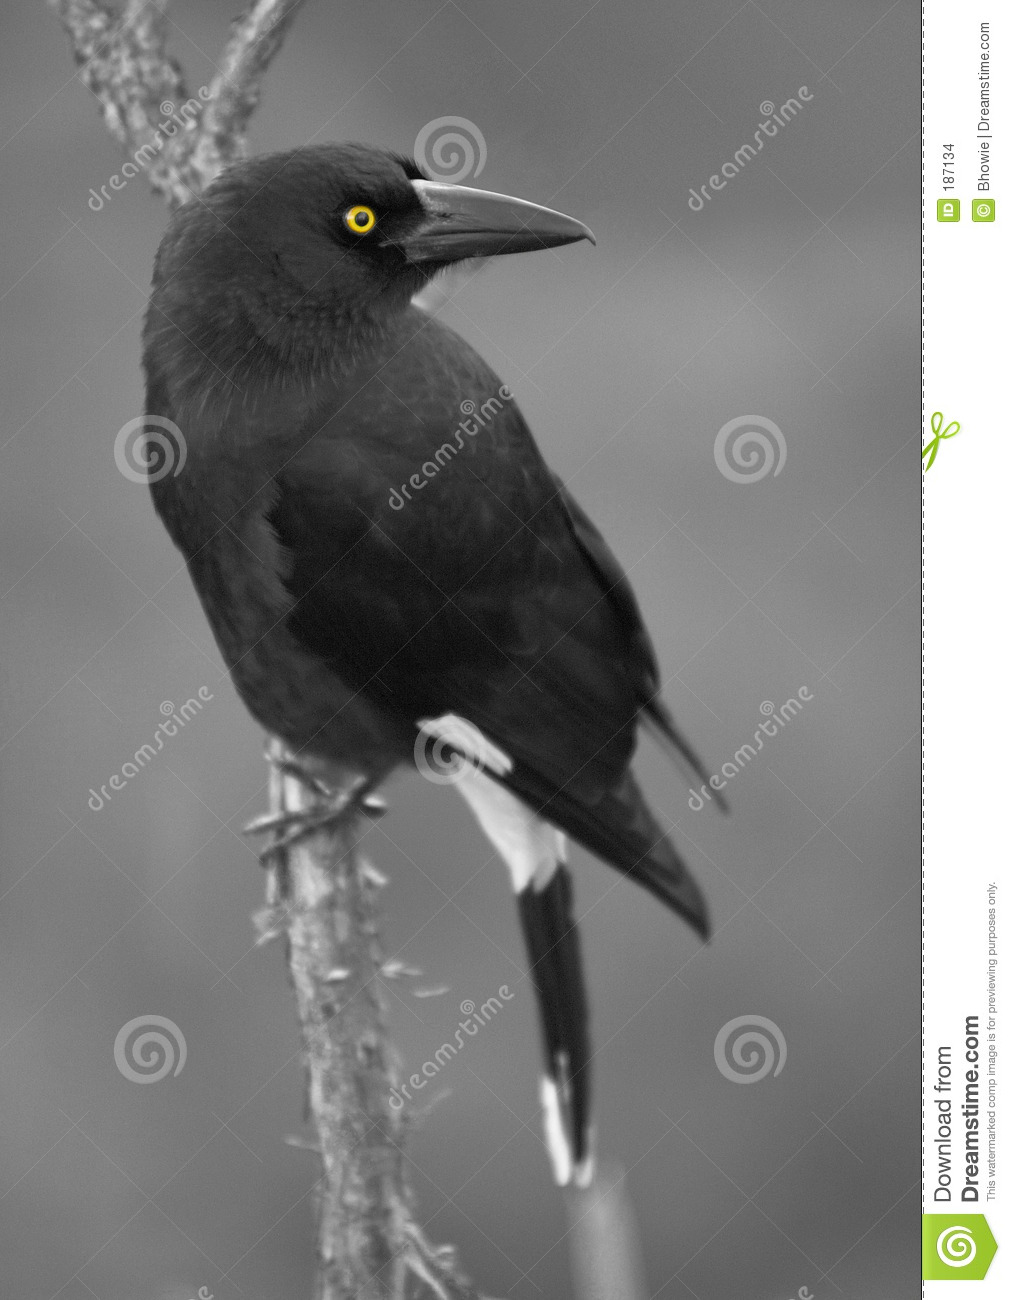 Currawong Eyed colore giallo